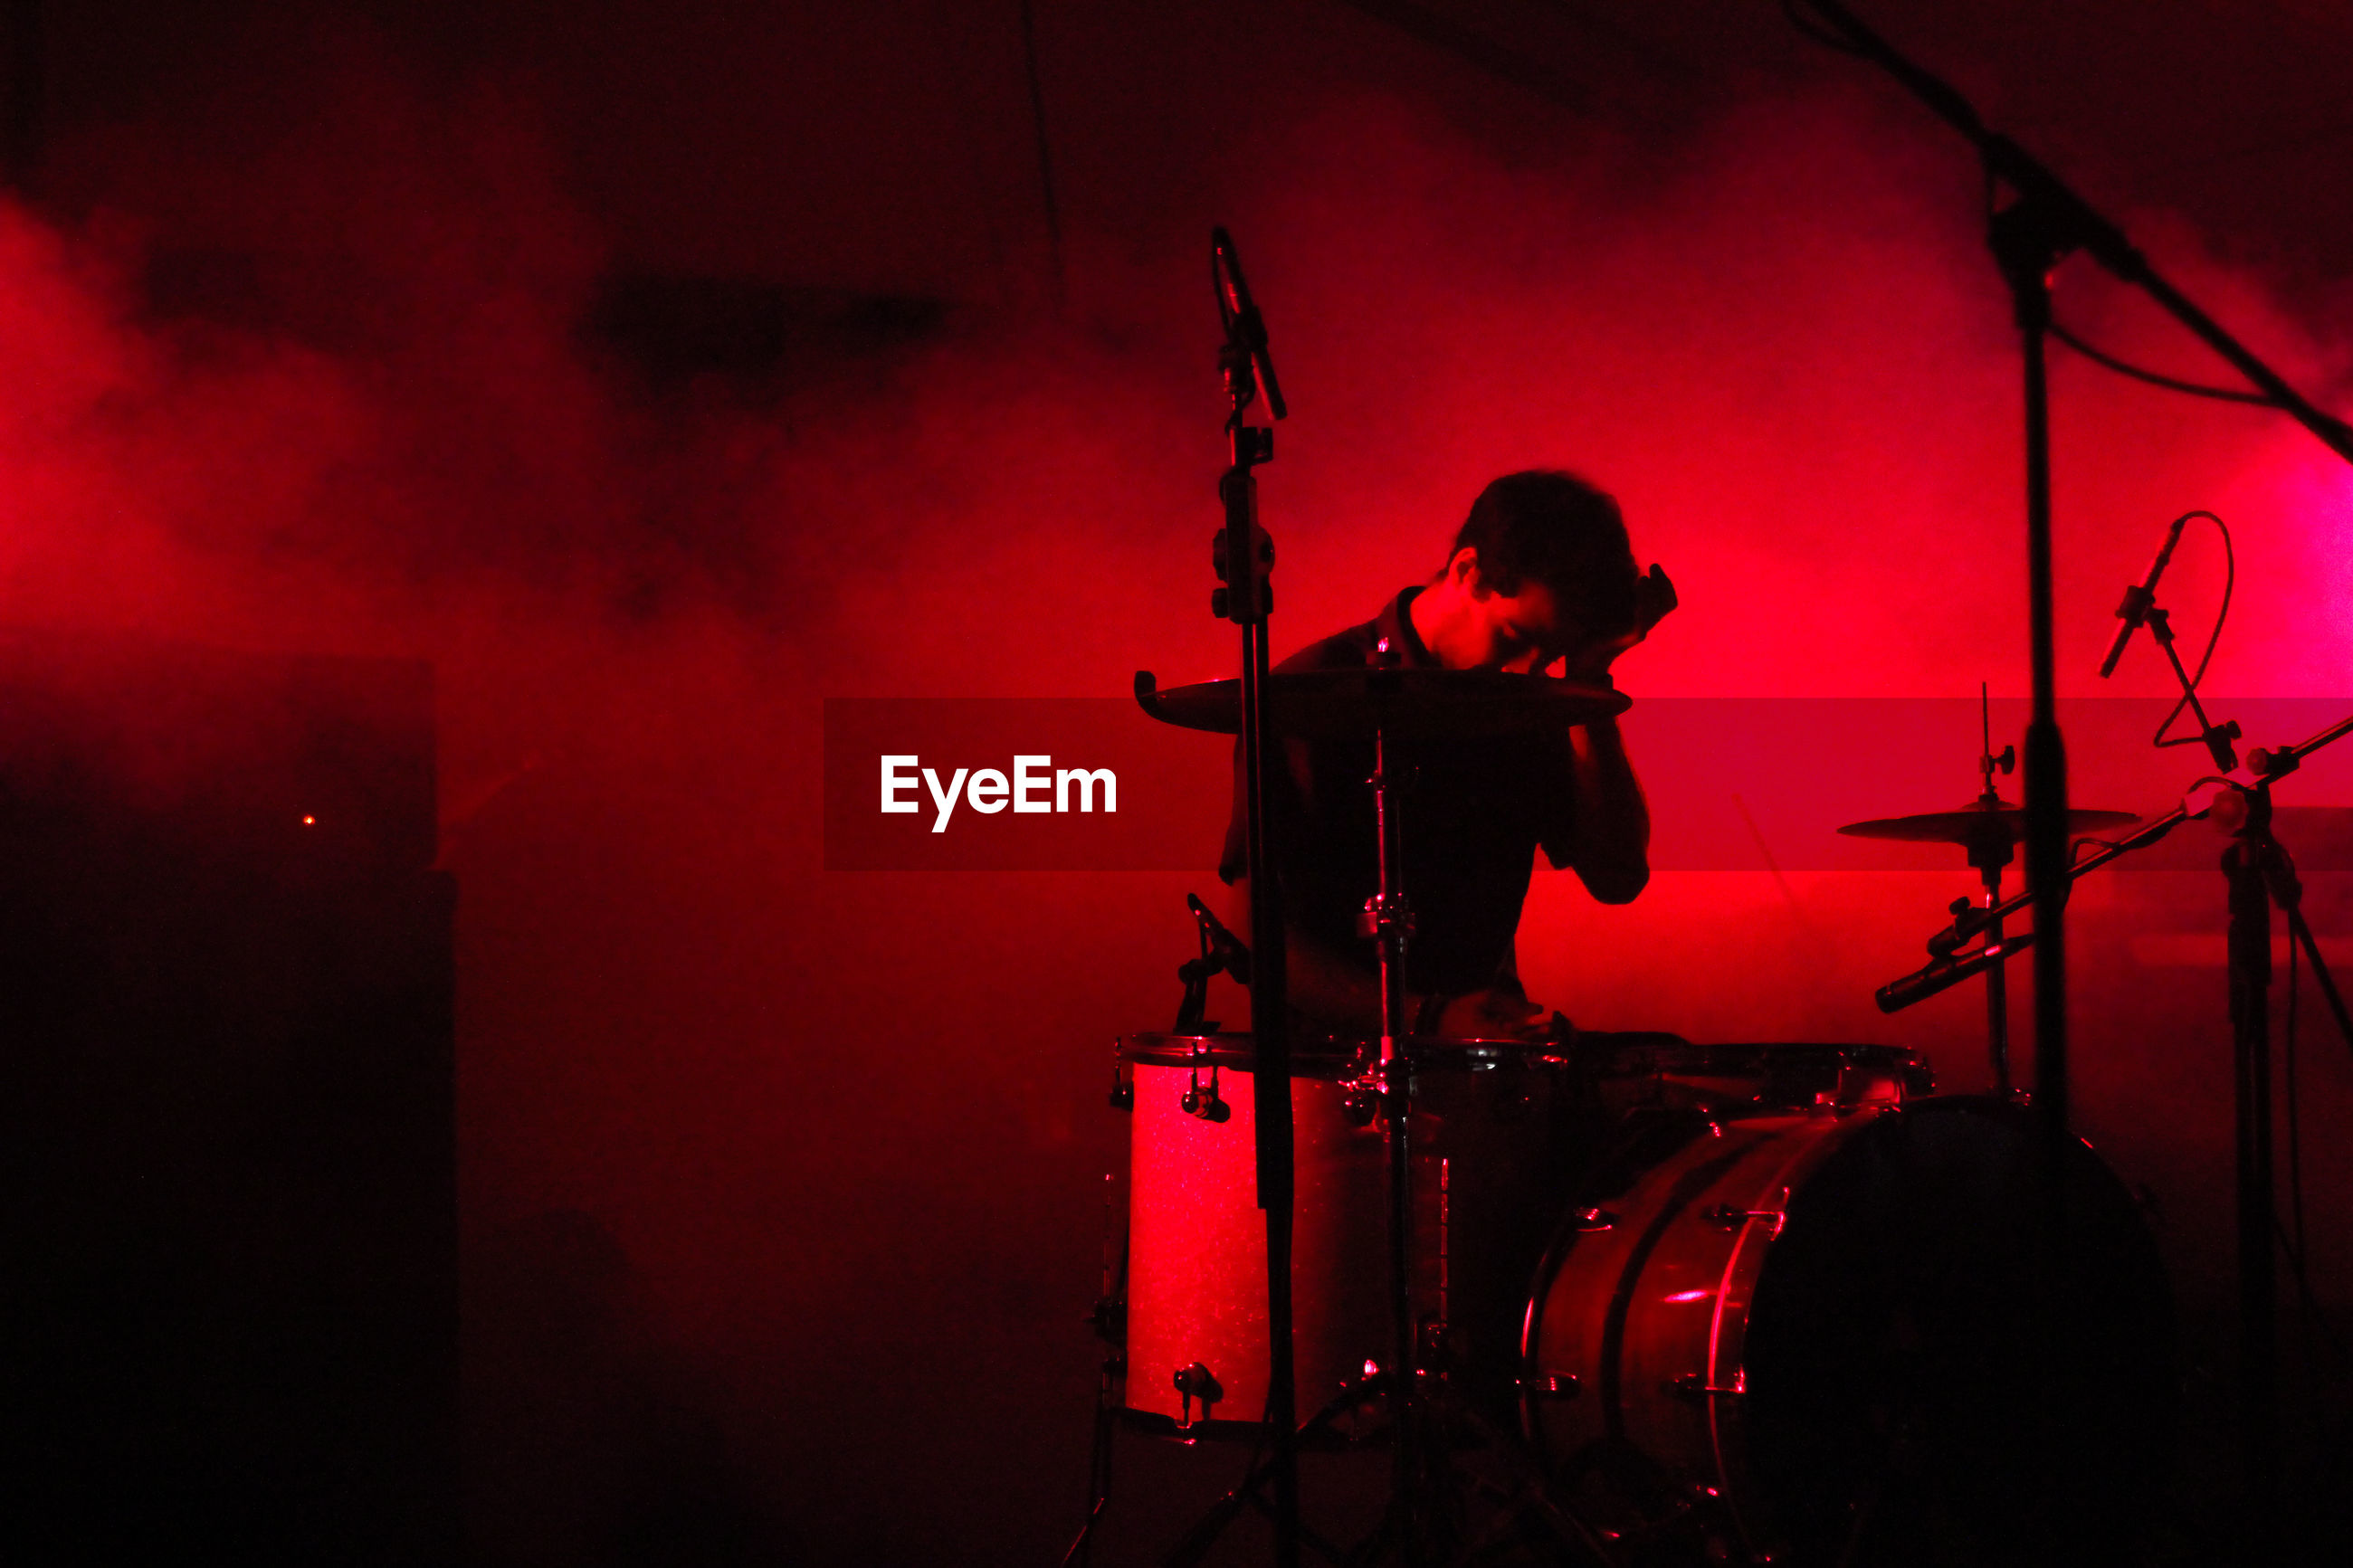 Drummer sitting by drums during music concert